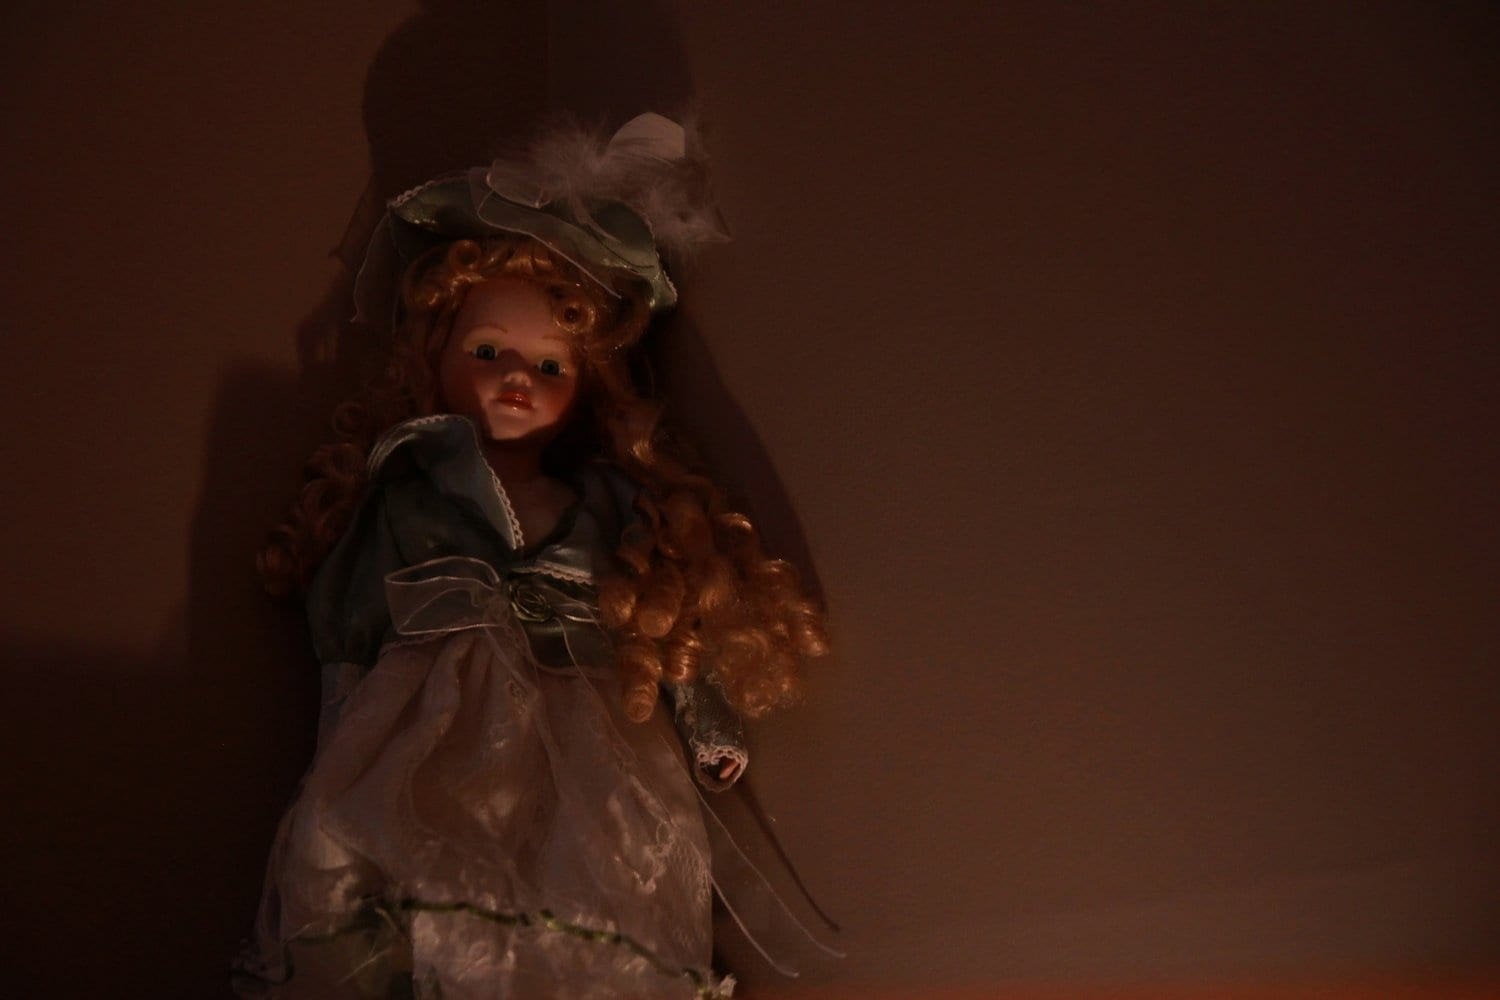 A still from the set of the short film Apparitions. A creepy doll.